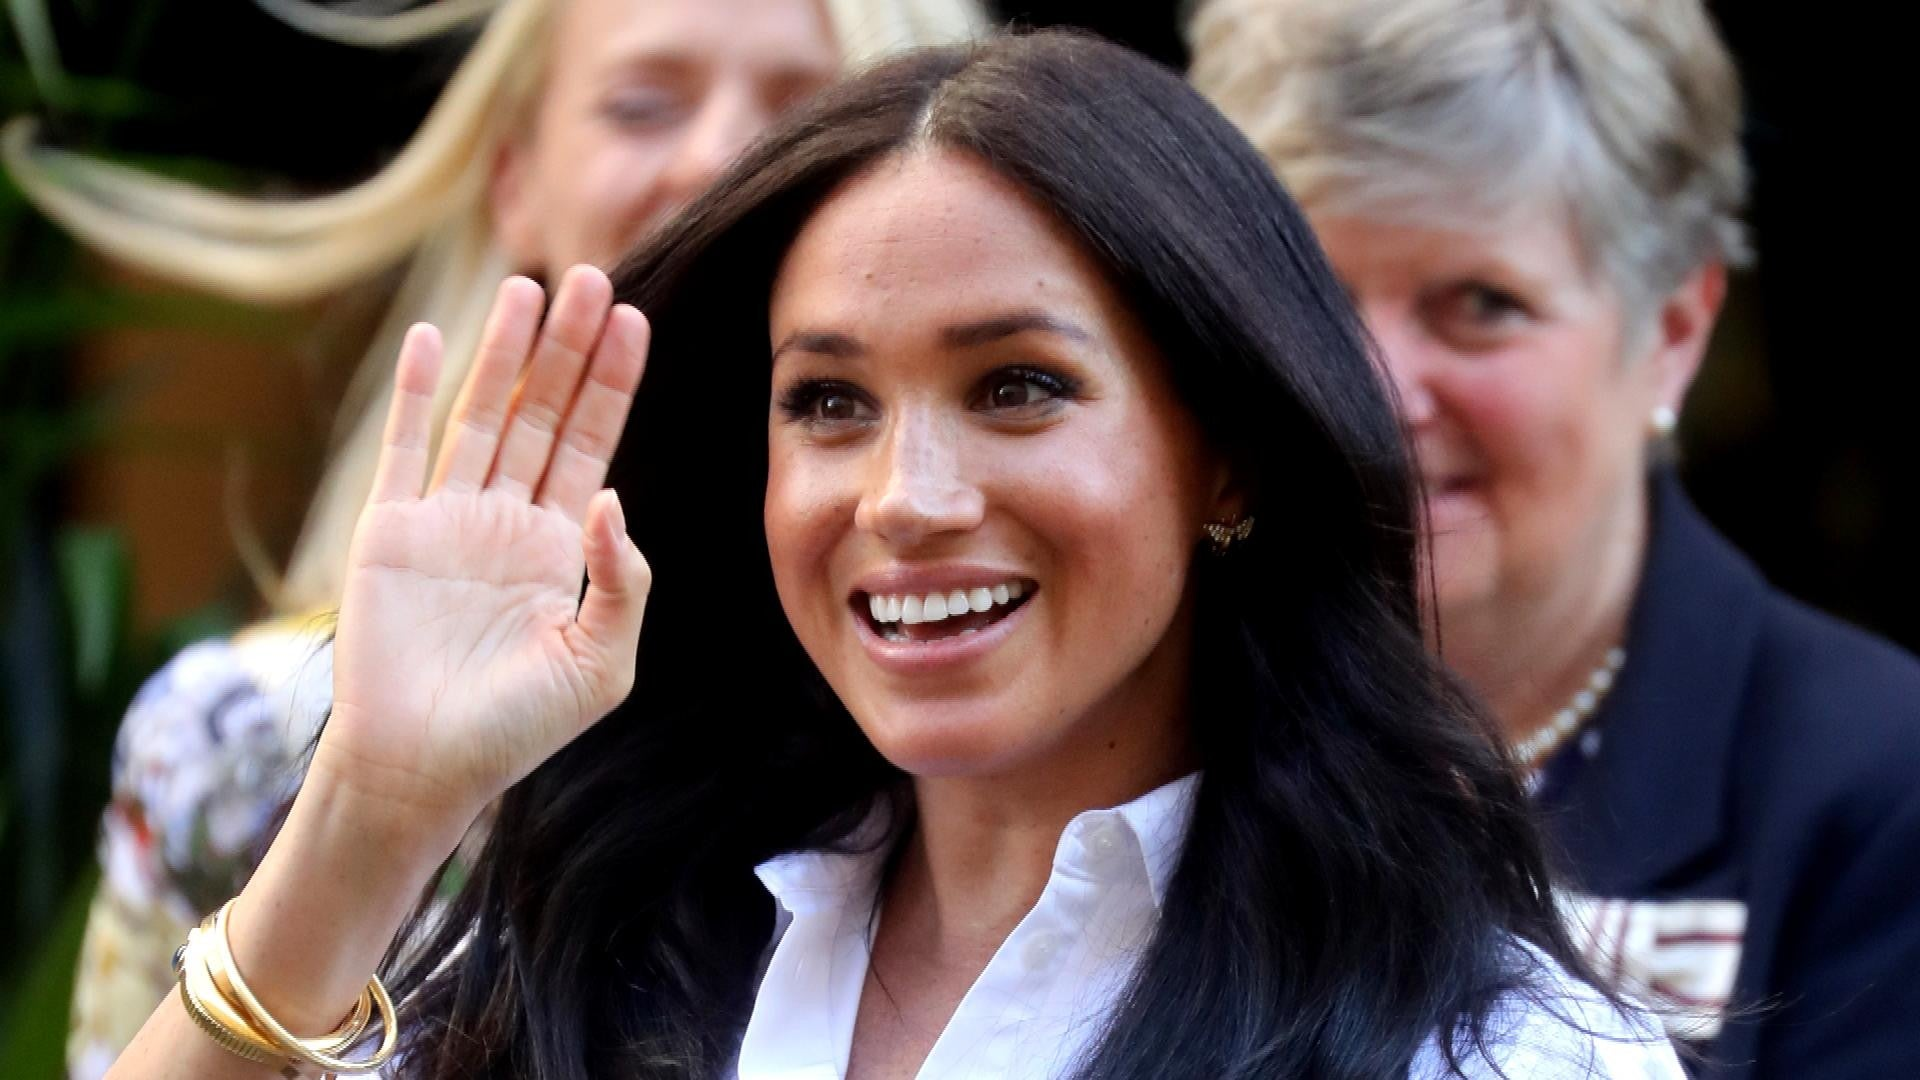 meghan markle wears princess diana s earrings at launch of her capsule collection pics entertainment tonight meghan markle returns from maternity leave to launch smart works capsule collection